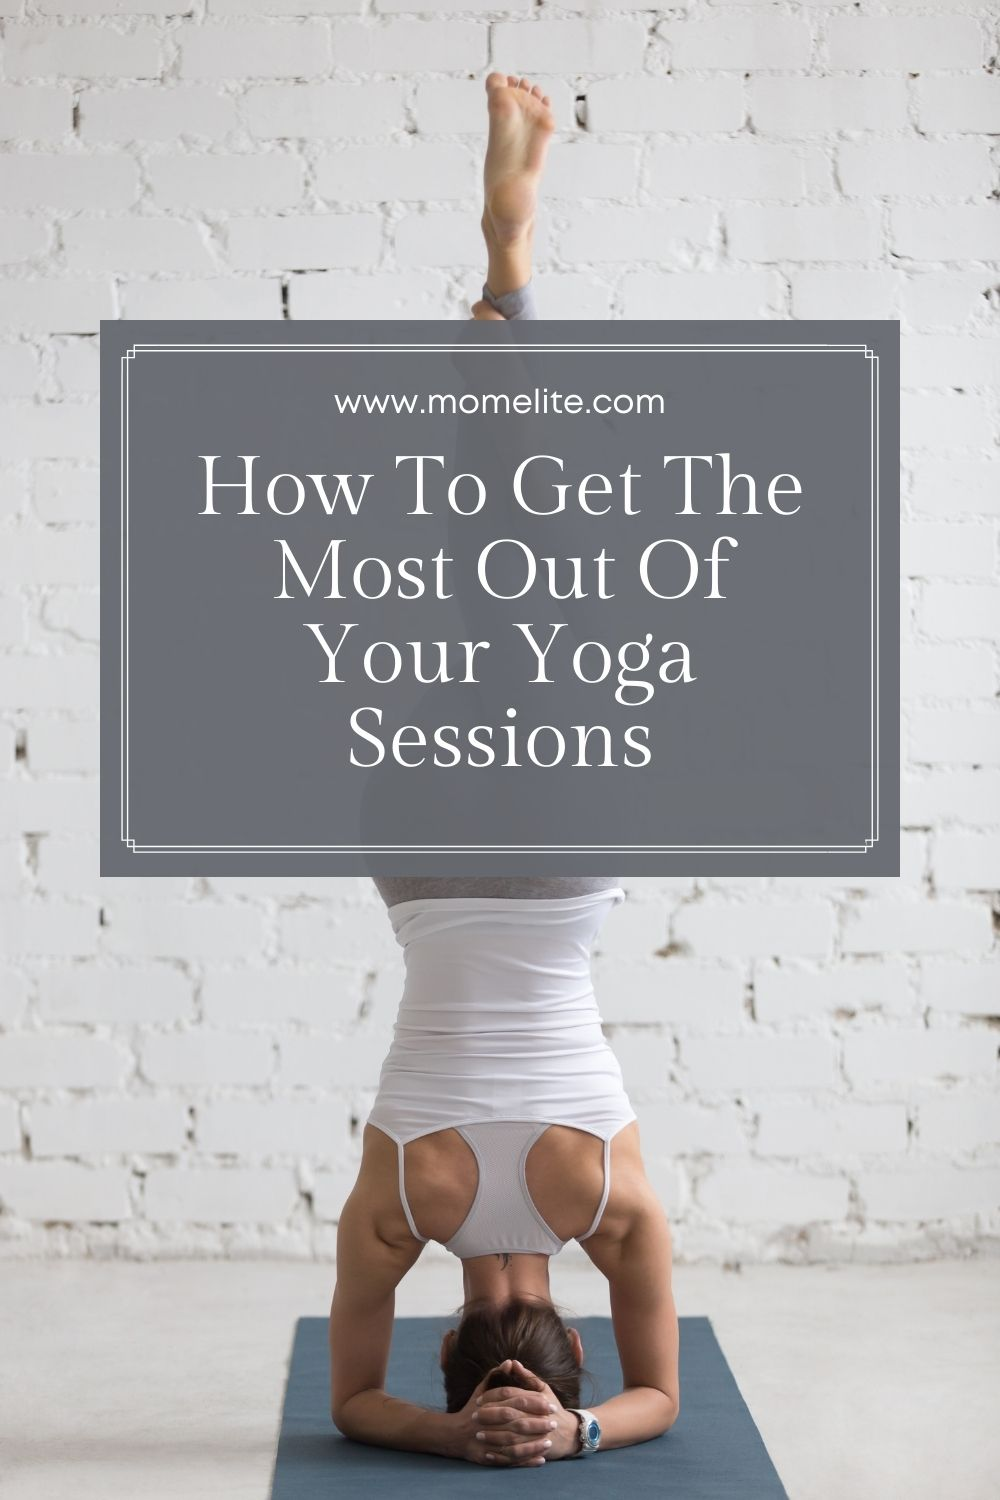 How To Get The Most Out Of Your Yoga Sessions